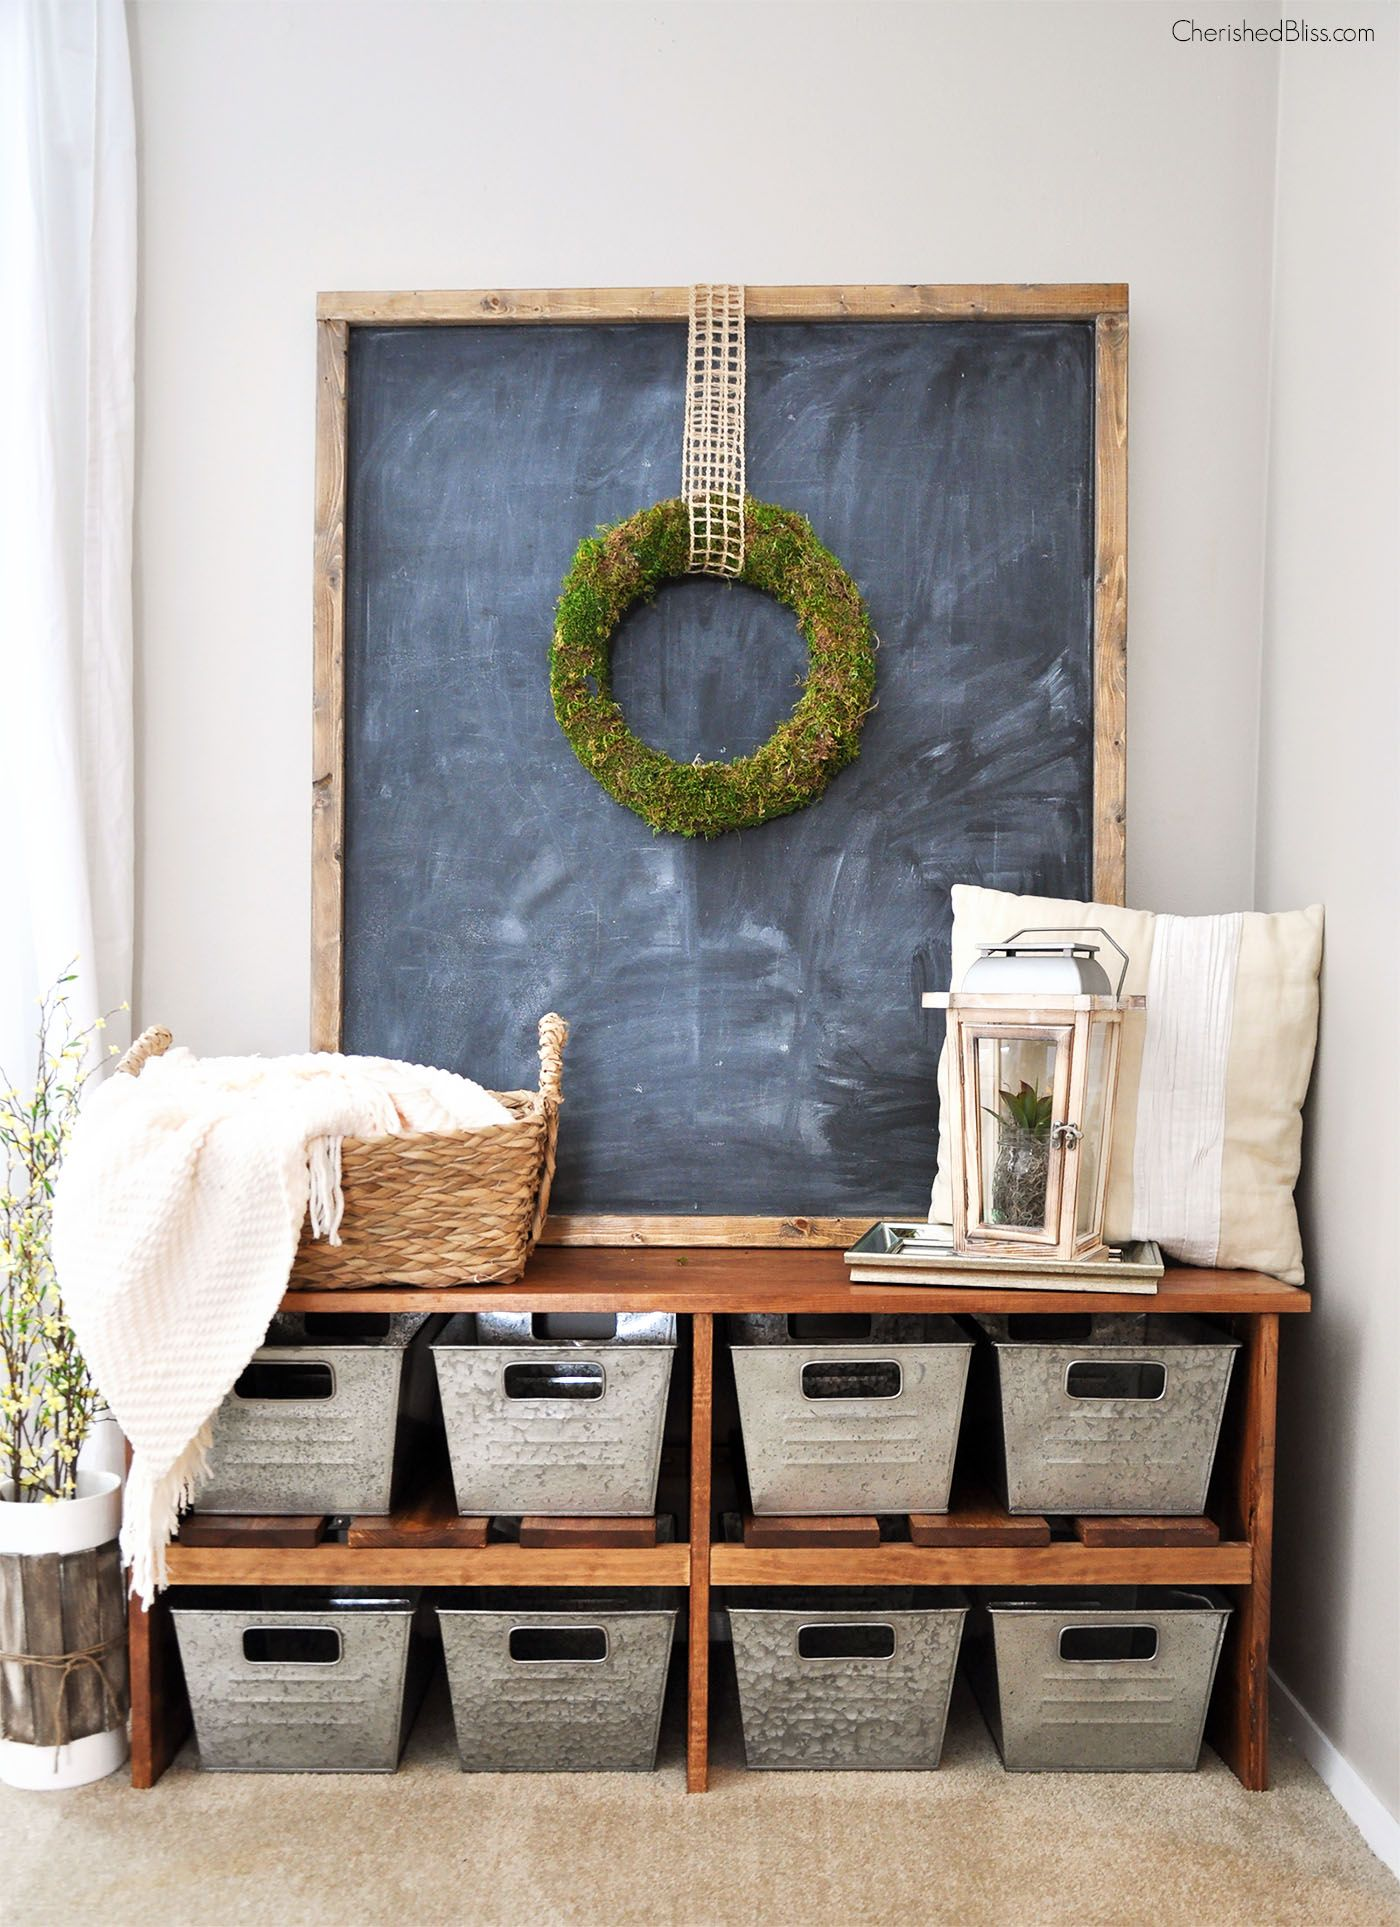 Love This Rustic Farmhouse Entryway! That Bench, Those Bins! I Want It All